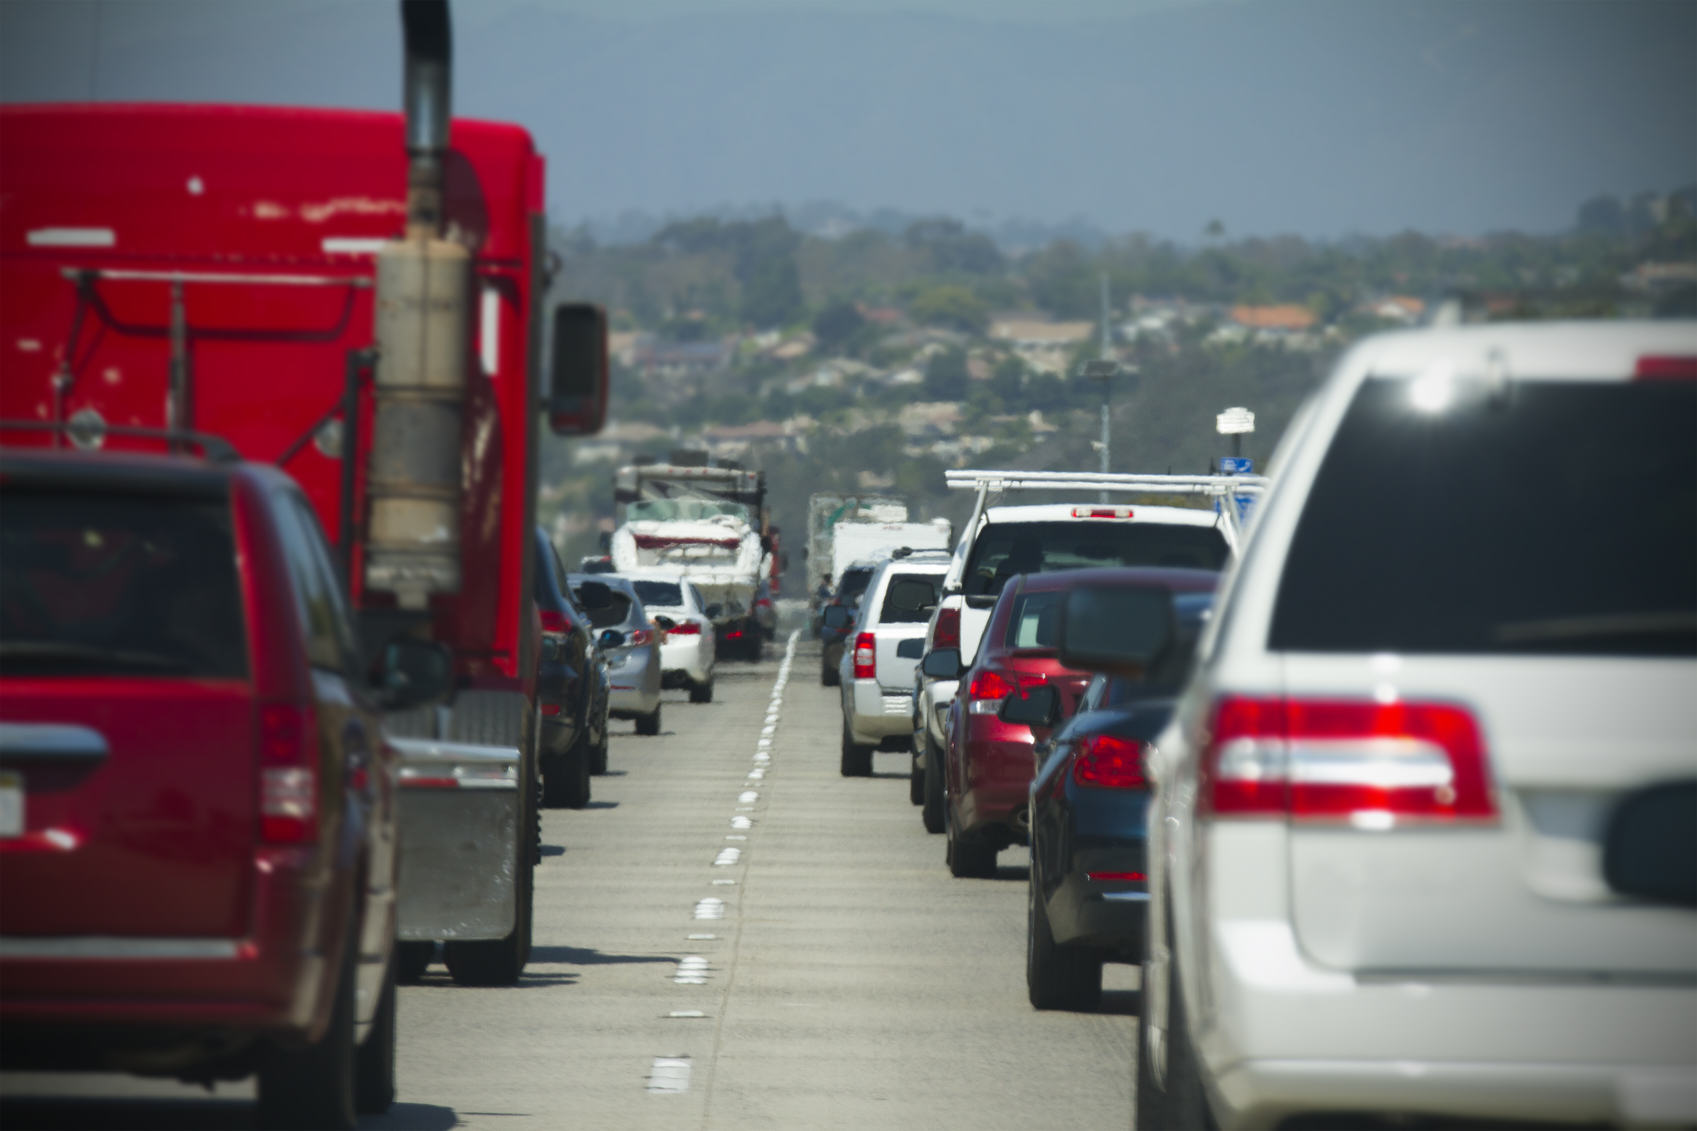 Traffic congestion doesn't have to increase fleet costs